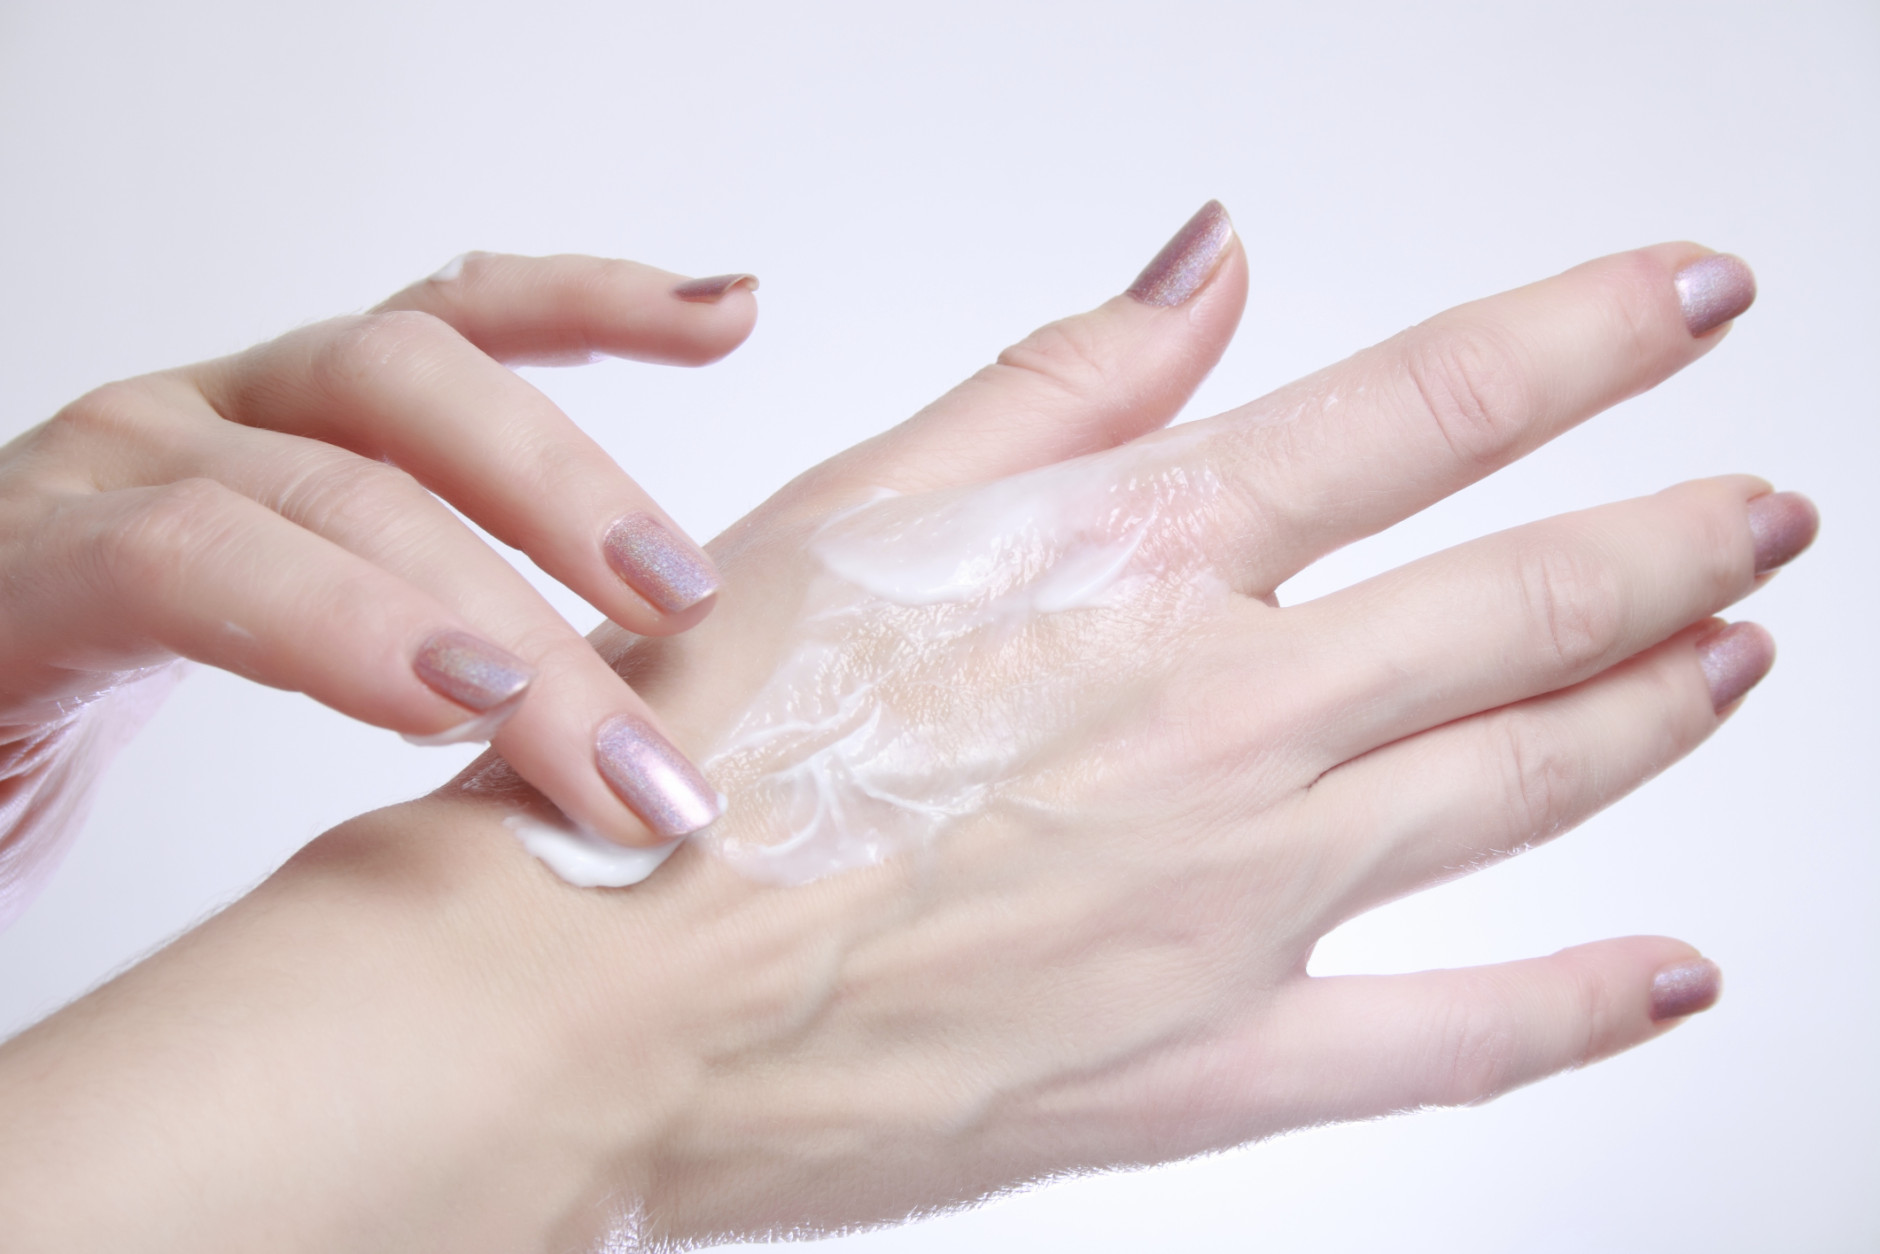 Summer heat and humidty can cause rashes to appear on your skin, but a dermatologist has tips that can help. (Thinkstock)